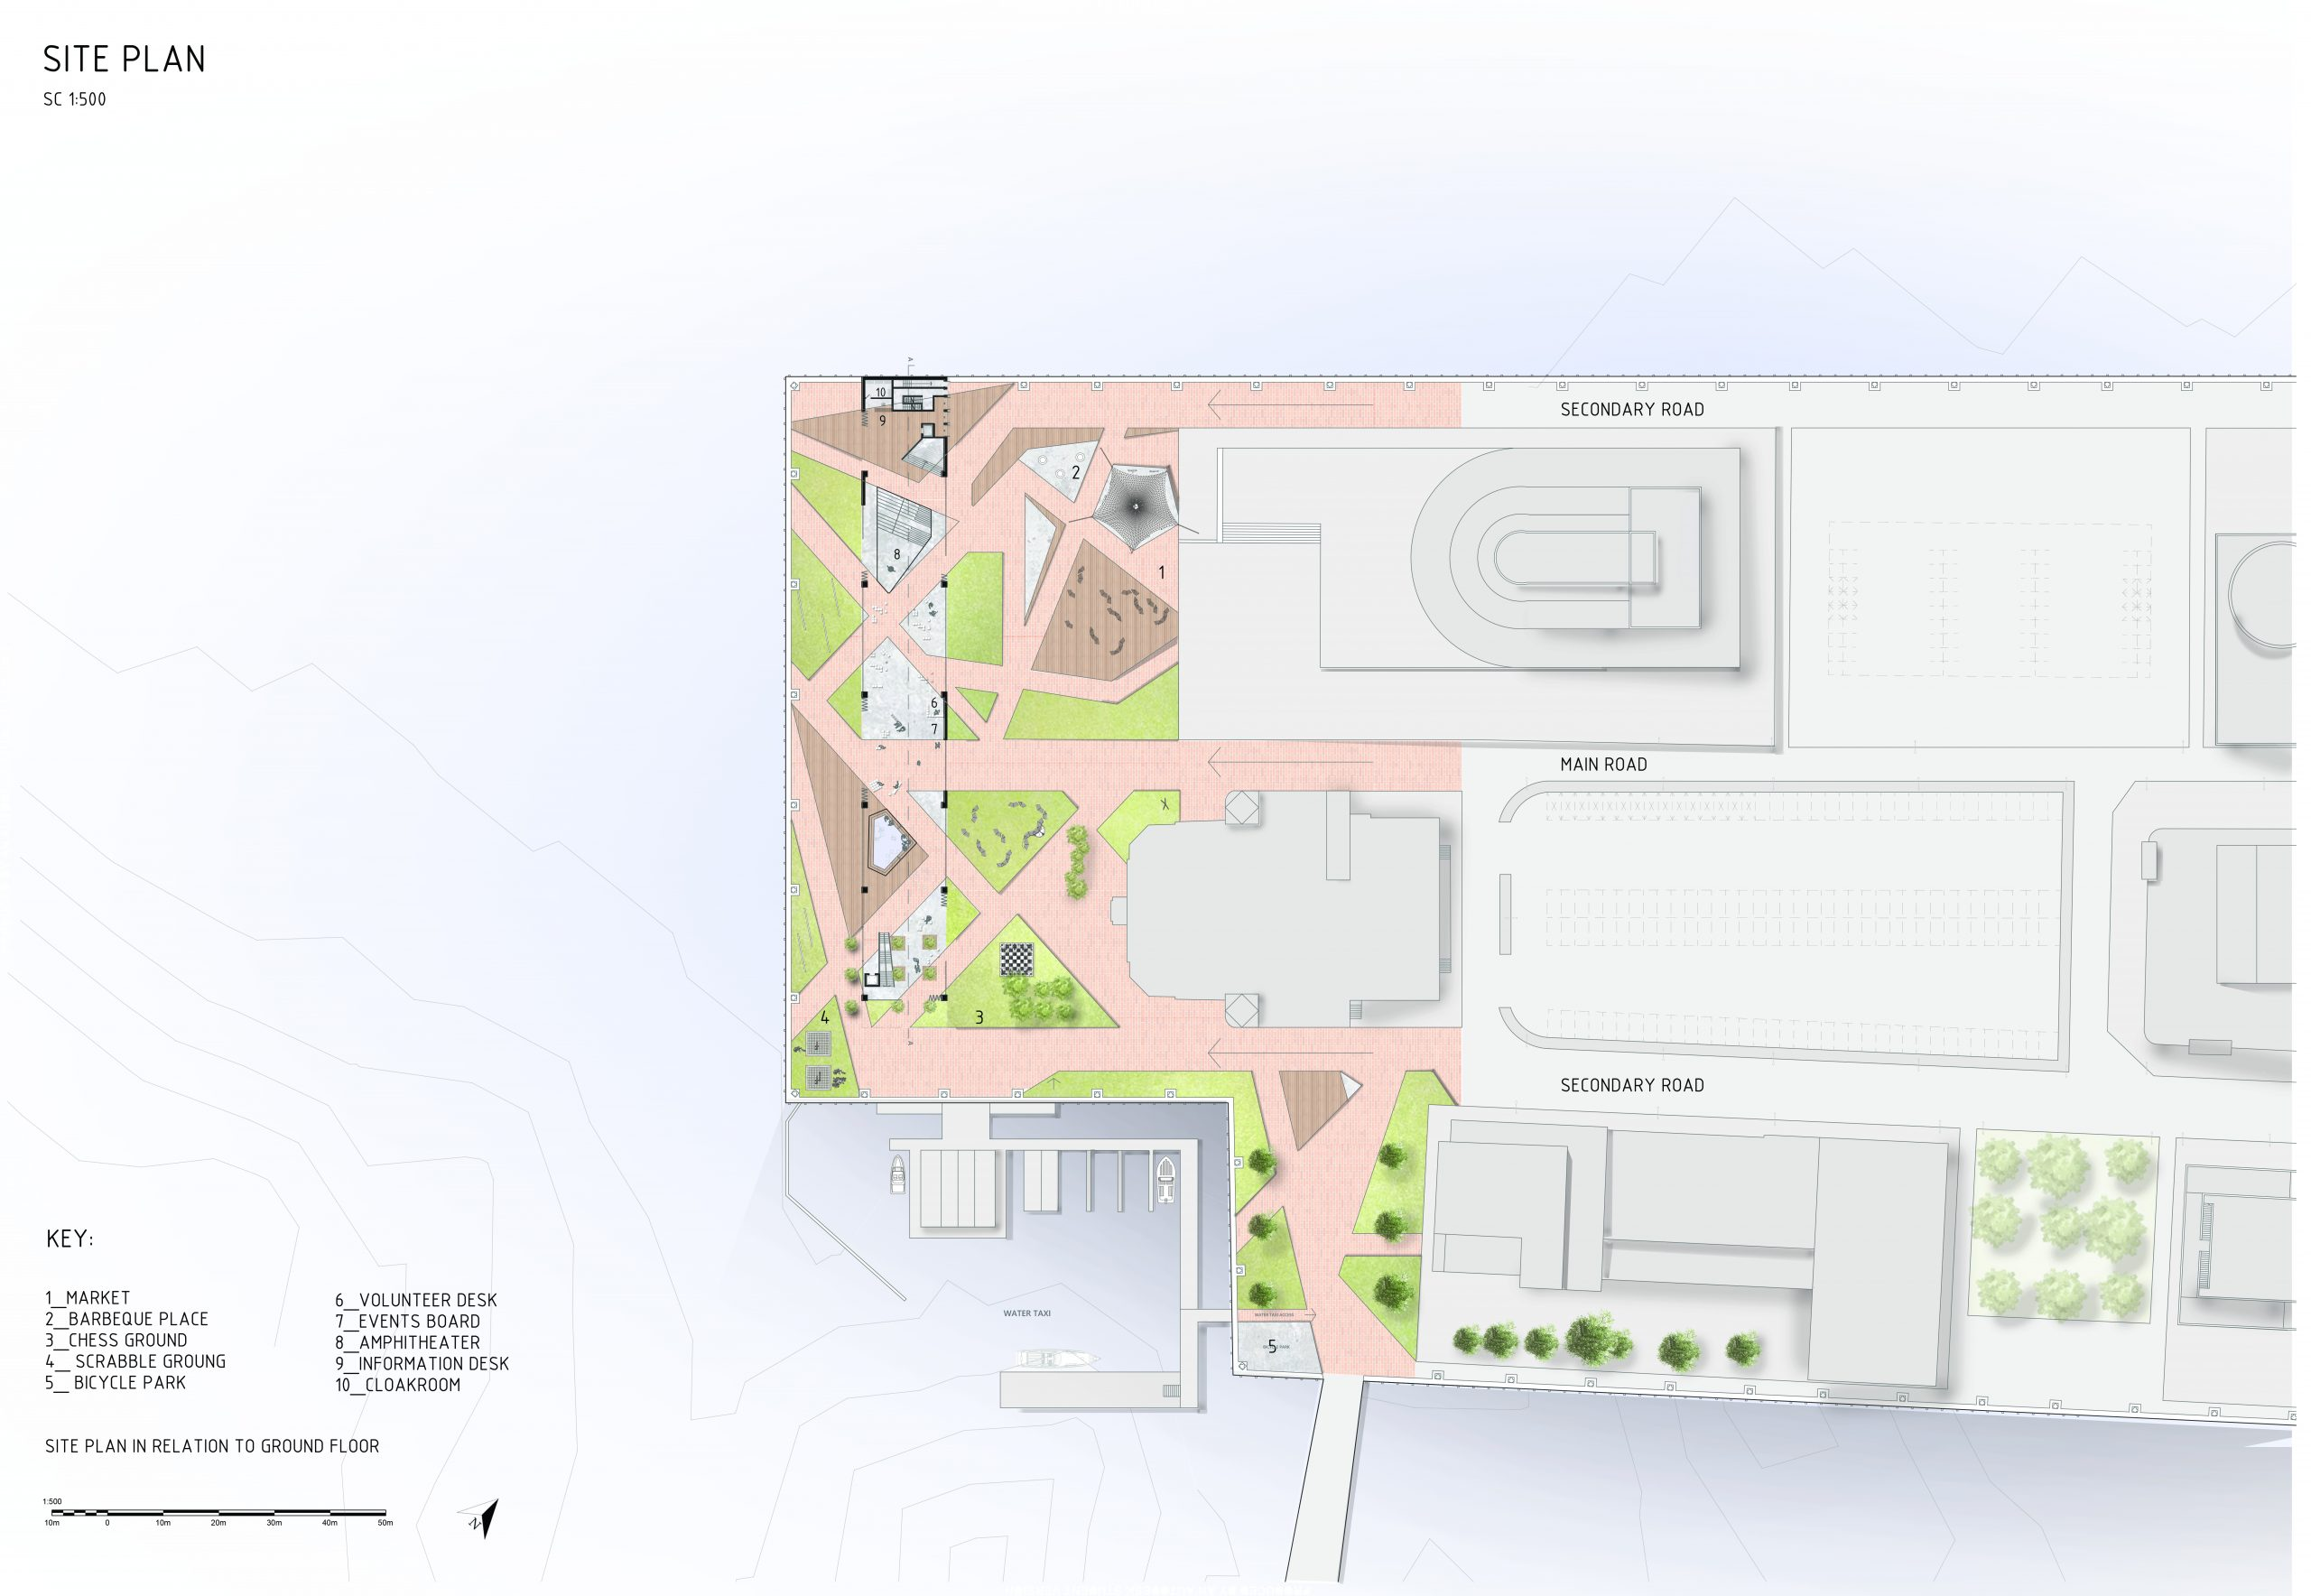 Site plan in relation to Ground floor Image